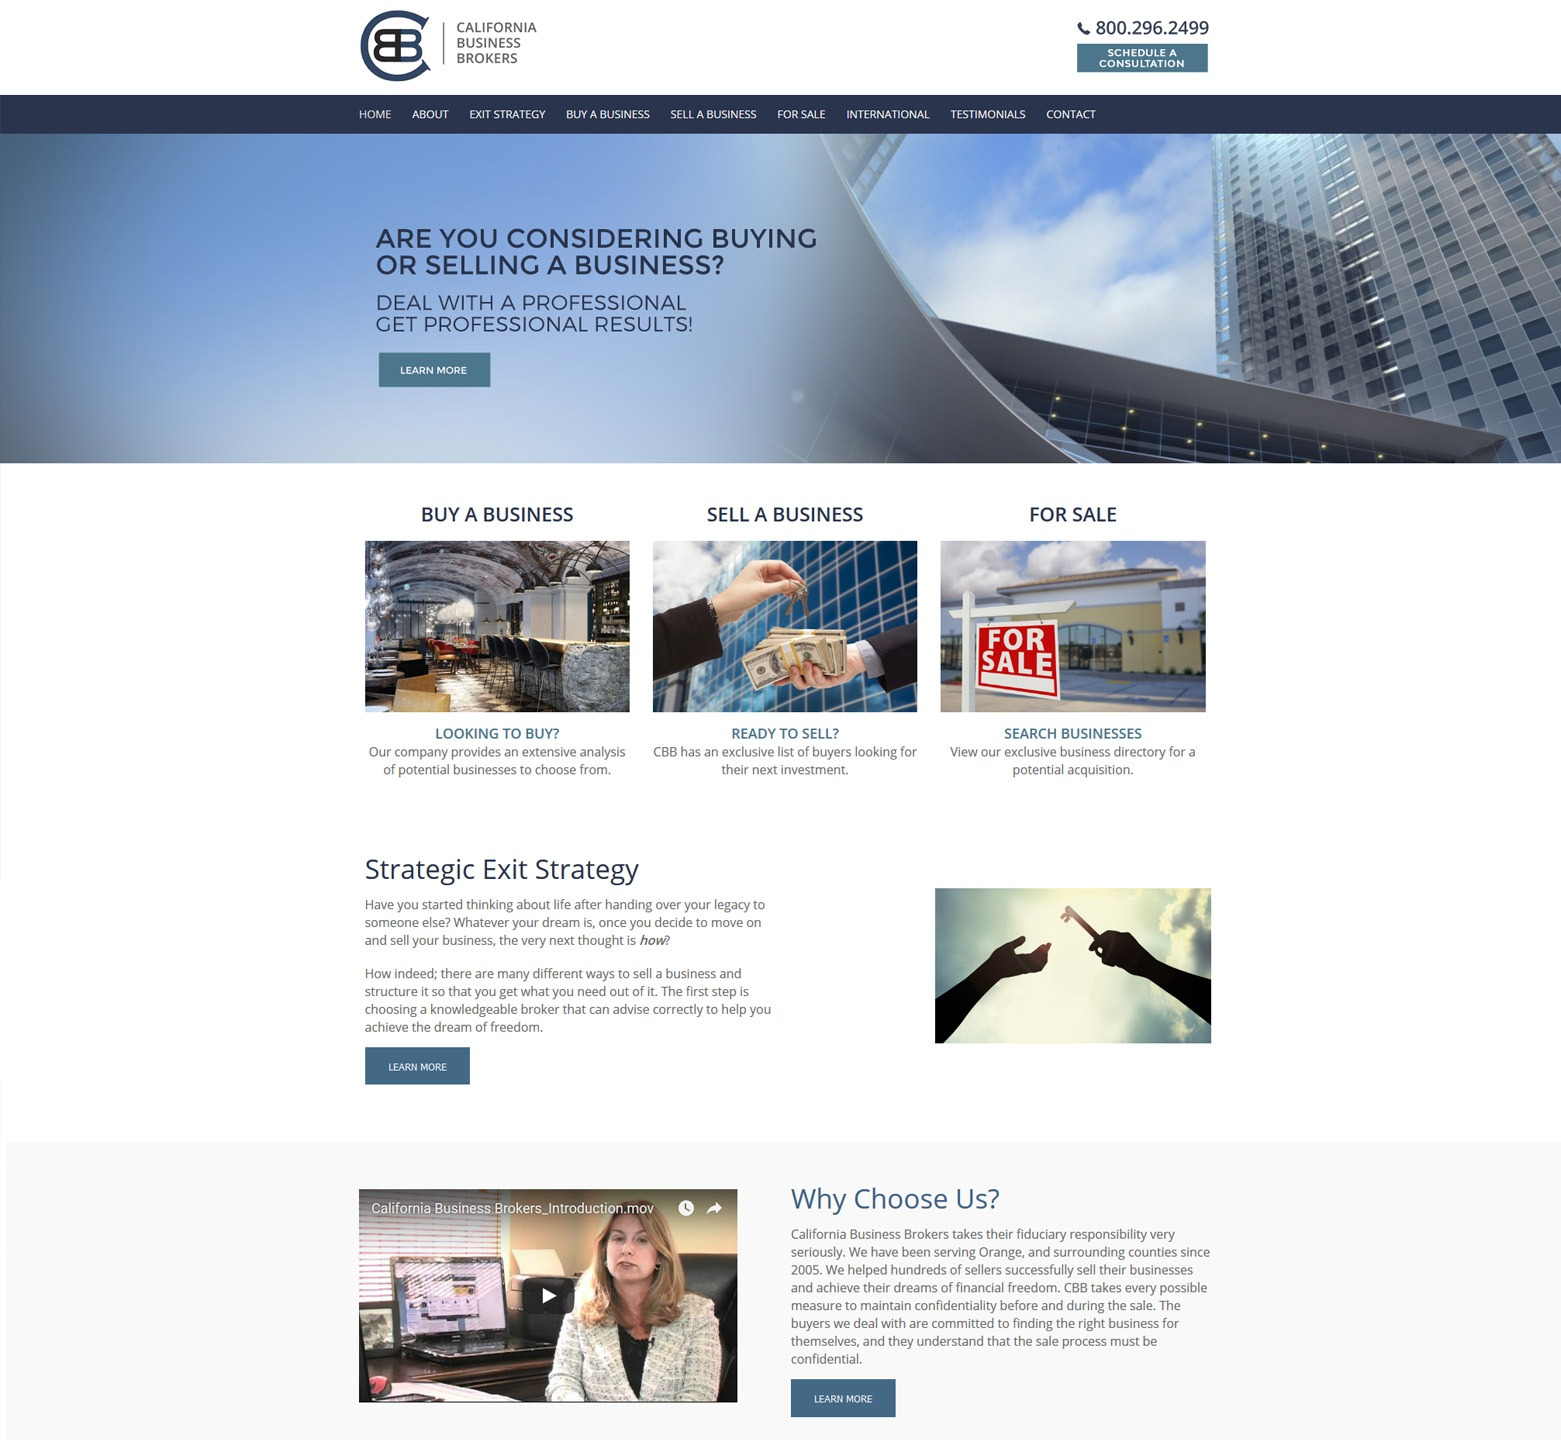 Business Broker Web Design Company - Lost Star Graphix